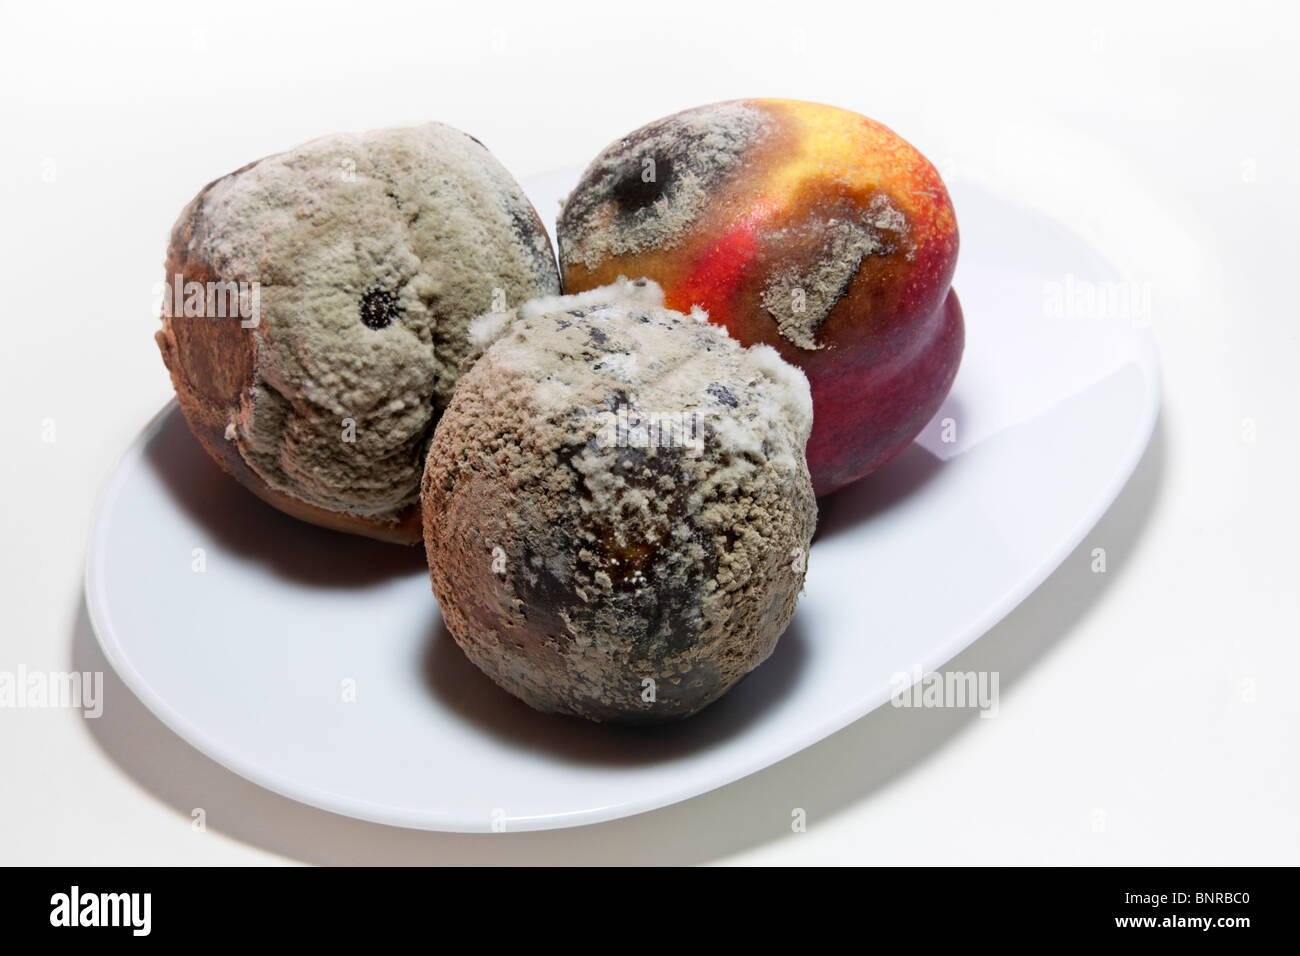 Rotten old nectarines covered with green fungus mould. - Stock Image